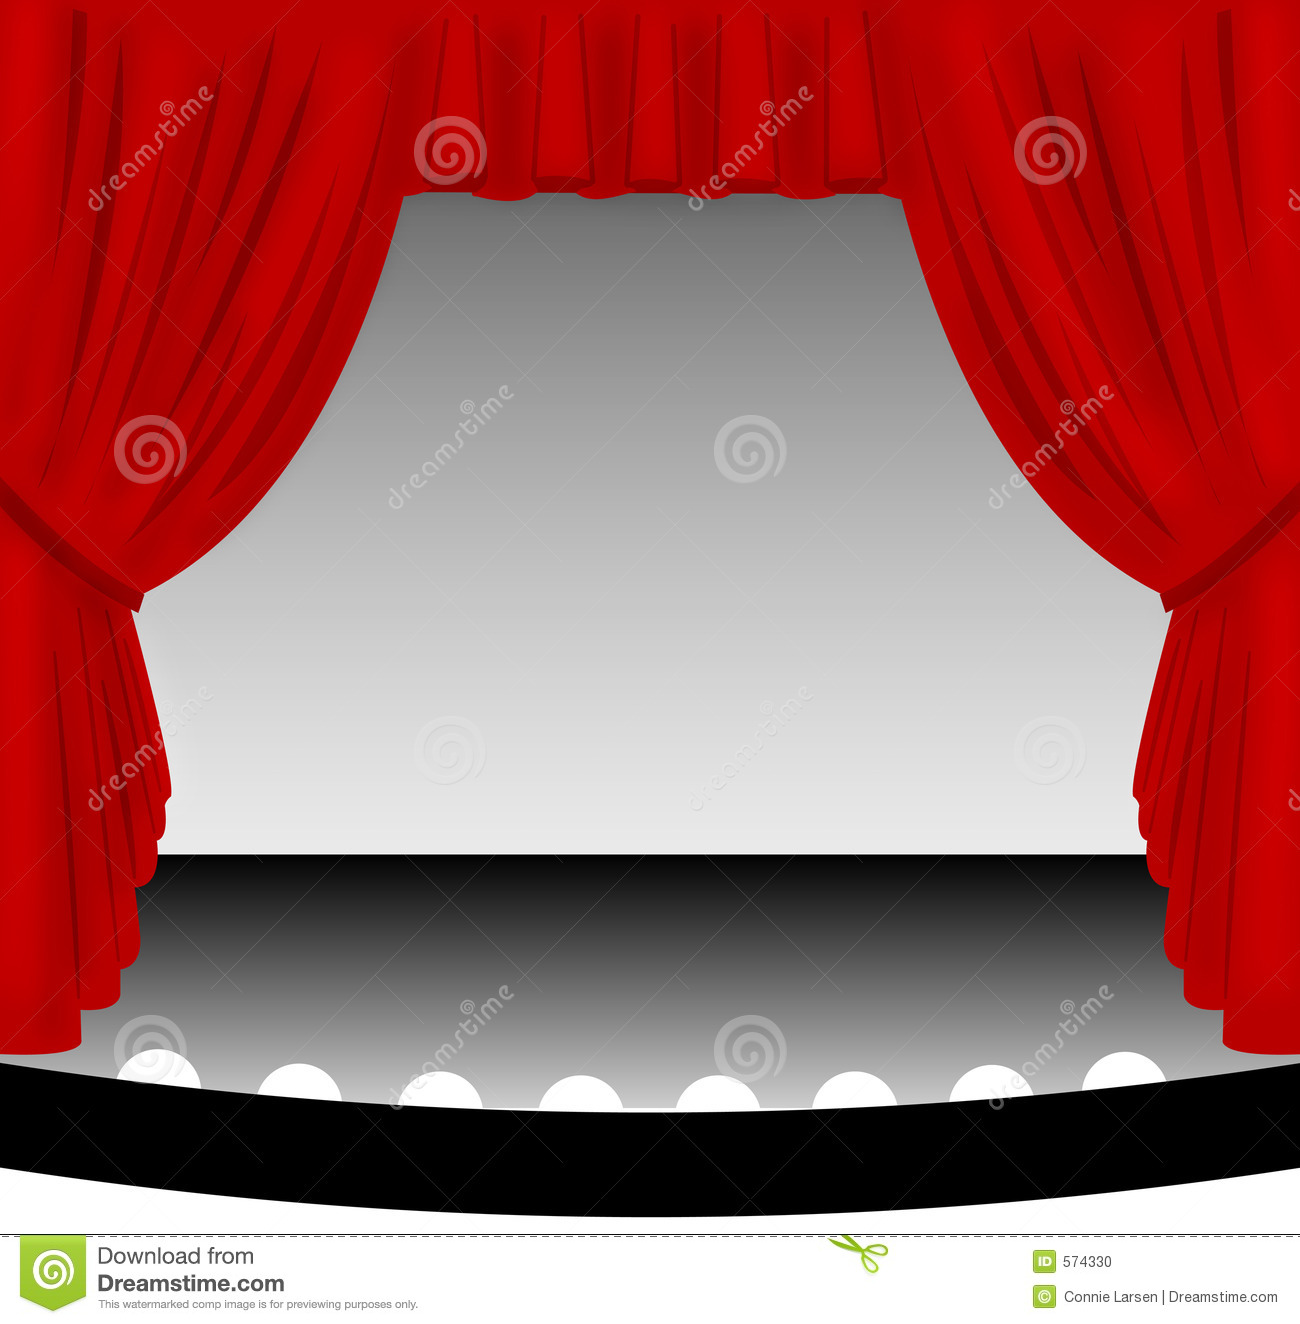 Stage Curtain Clipart Images Pictures Be-Stage Curtain Clipart Images Pictures Becuo-9